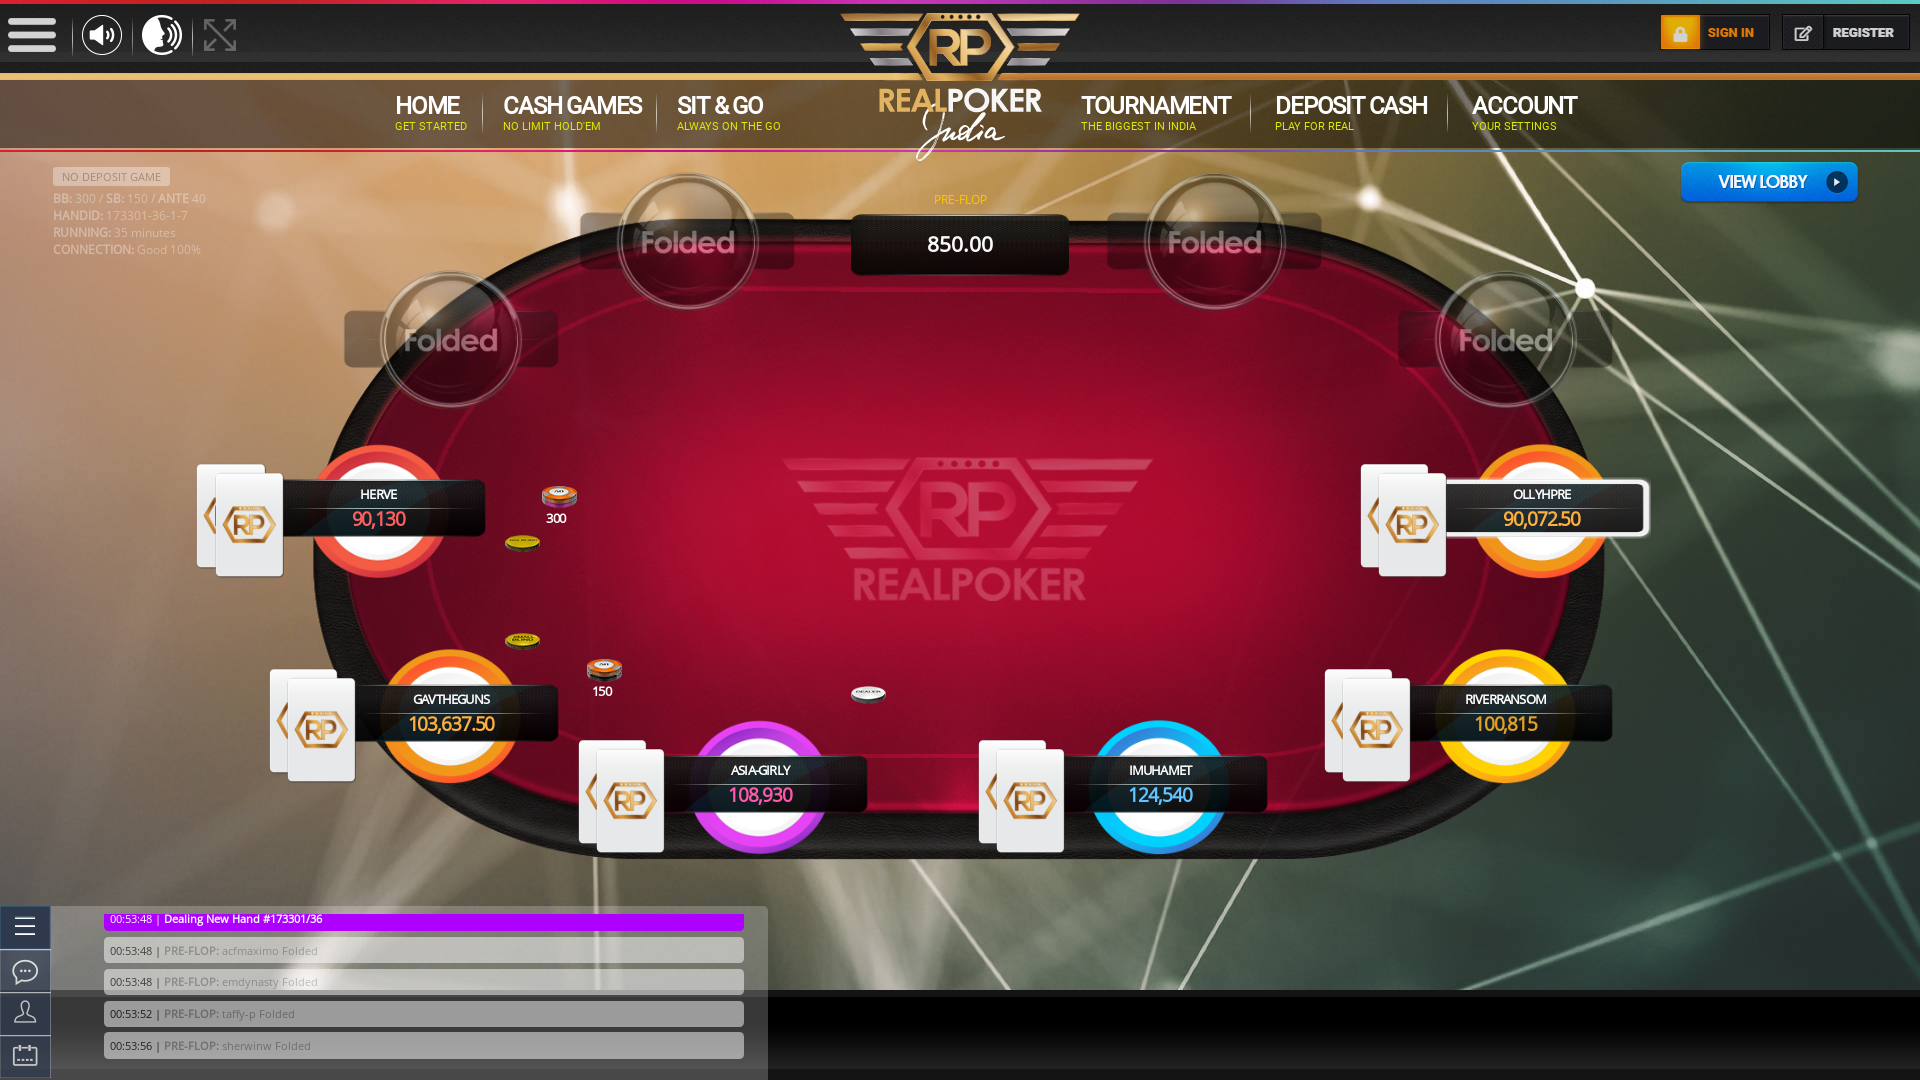 Saket, New Delhi texas holdem poker table on a 10 player table in the 34th minute of the match